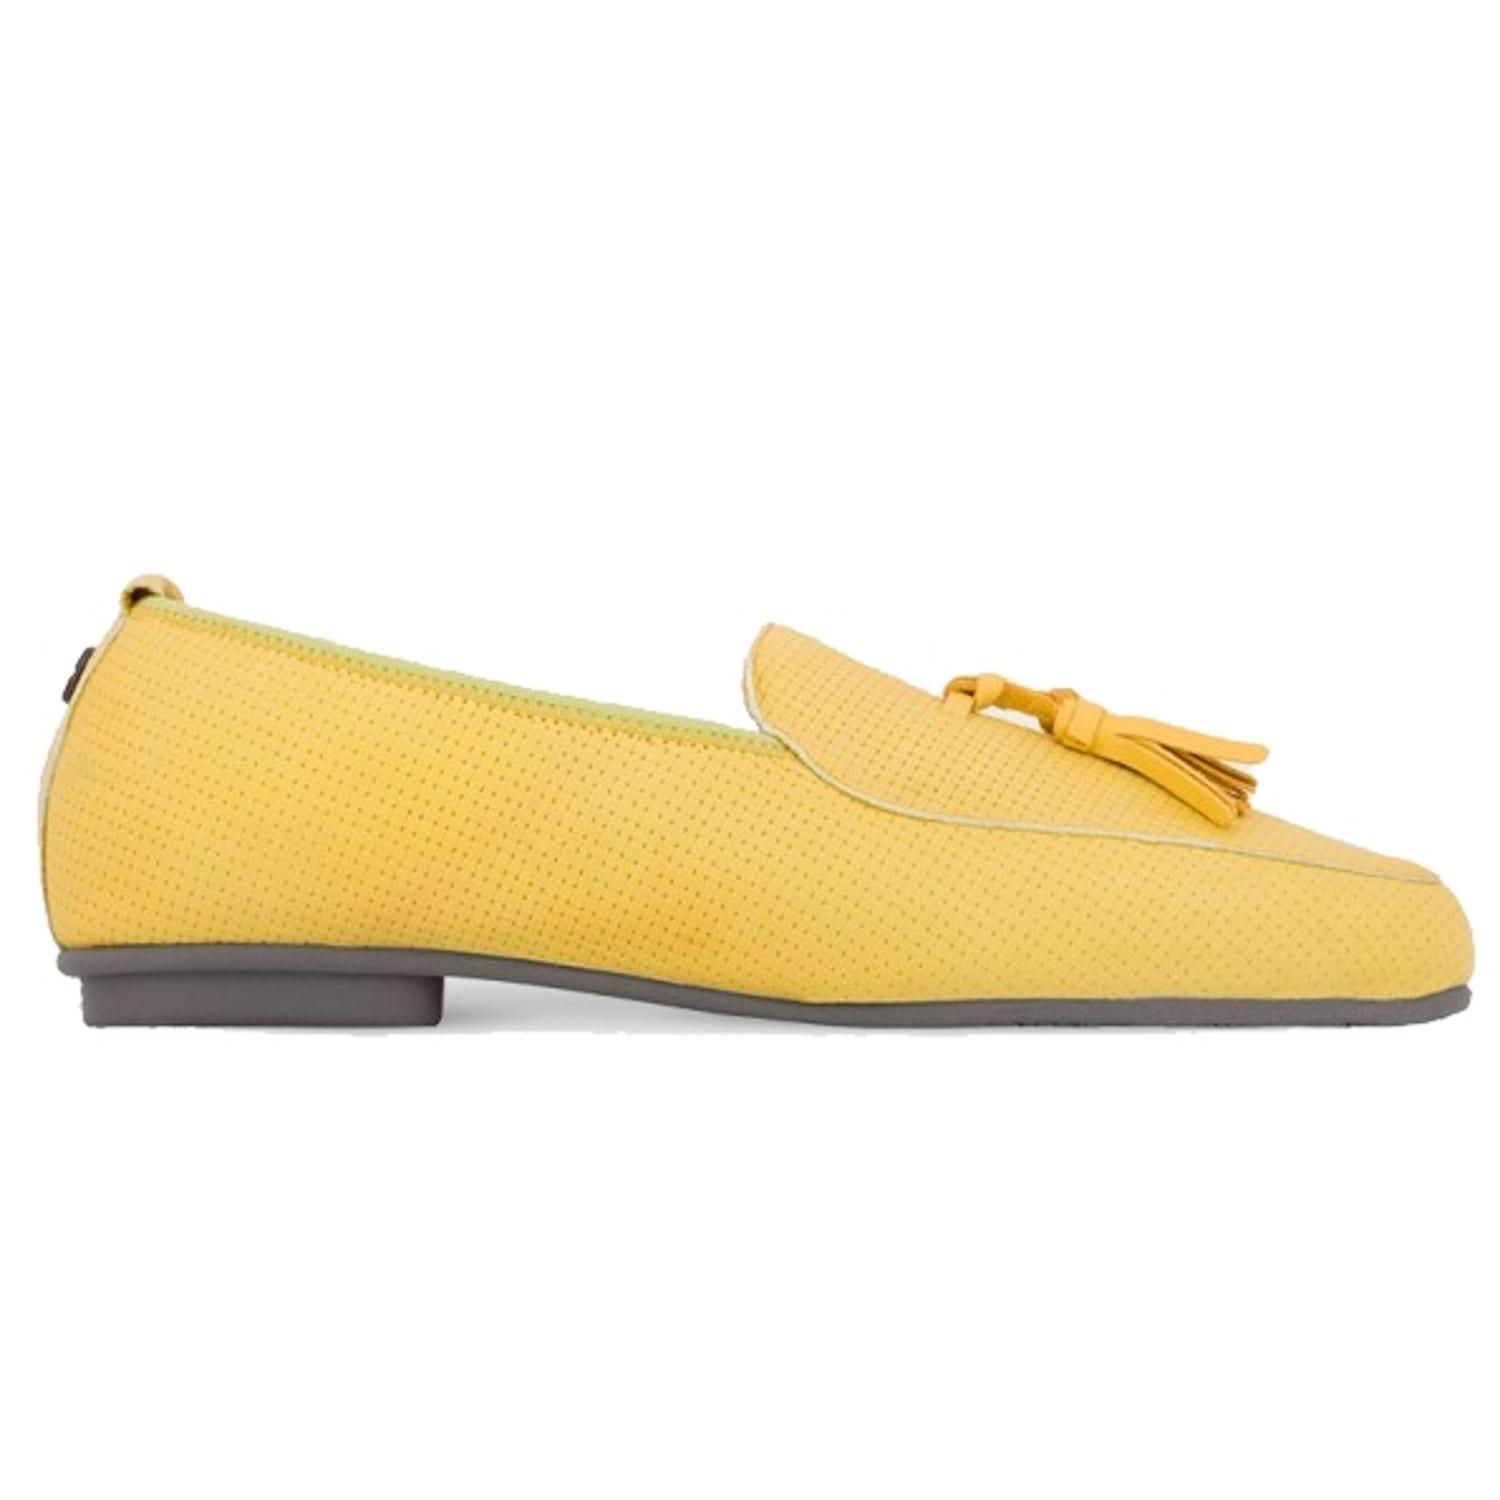 Morena Morena Lavita Yellow Loafer